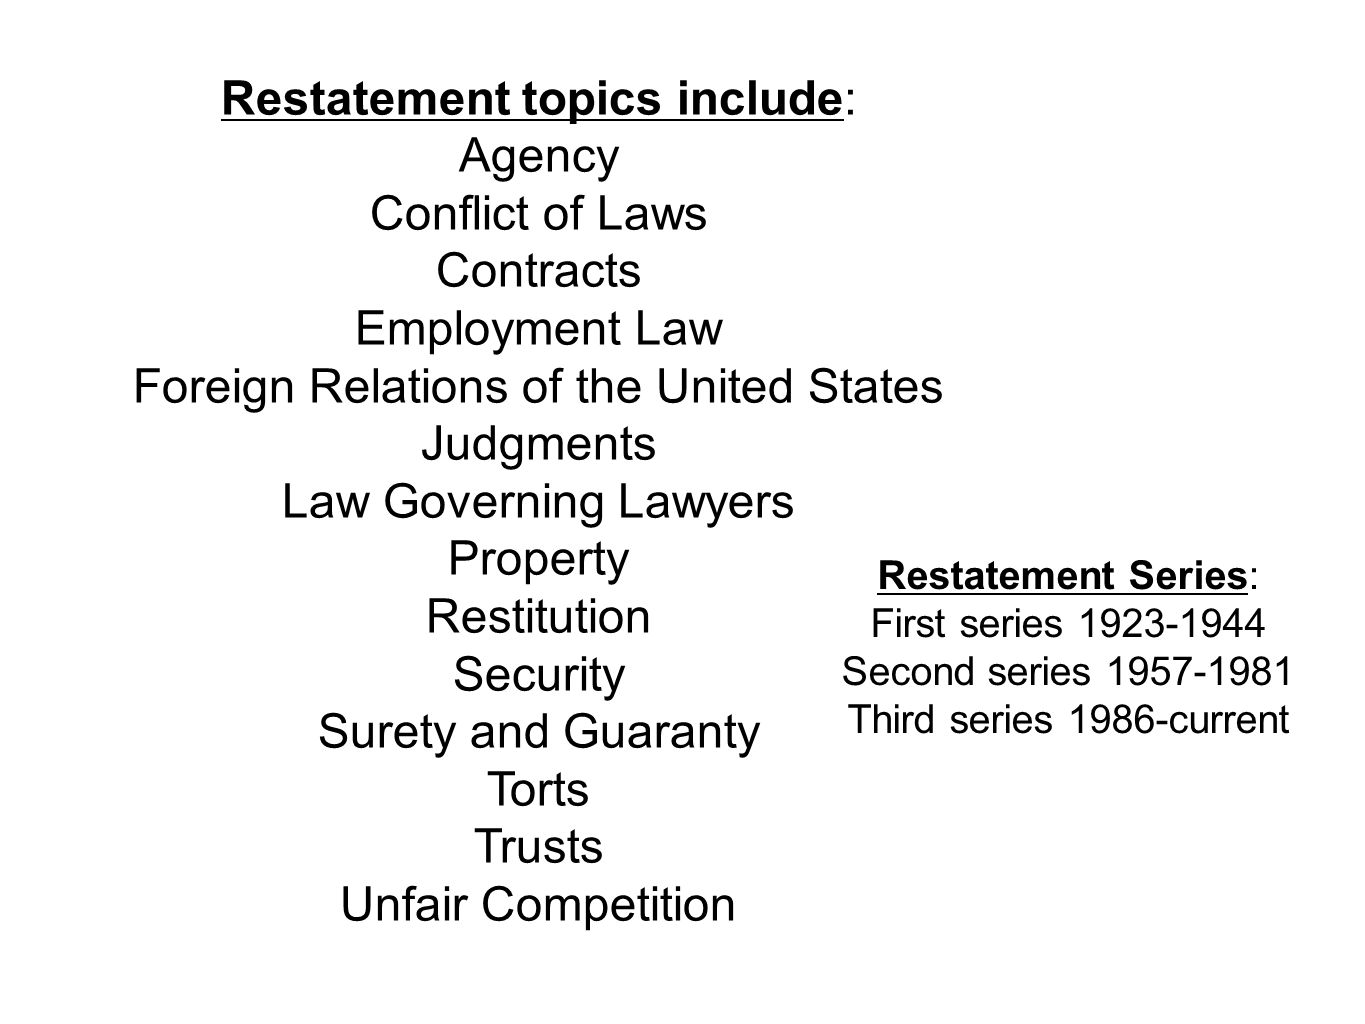 Restatement topics include: Agency Conflict of Laws Contracts Employment Law Foreign Relations of the United States Judgments Law Governing Lawyers Pr